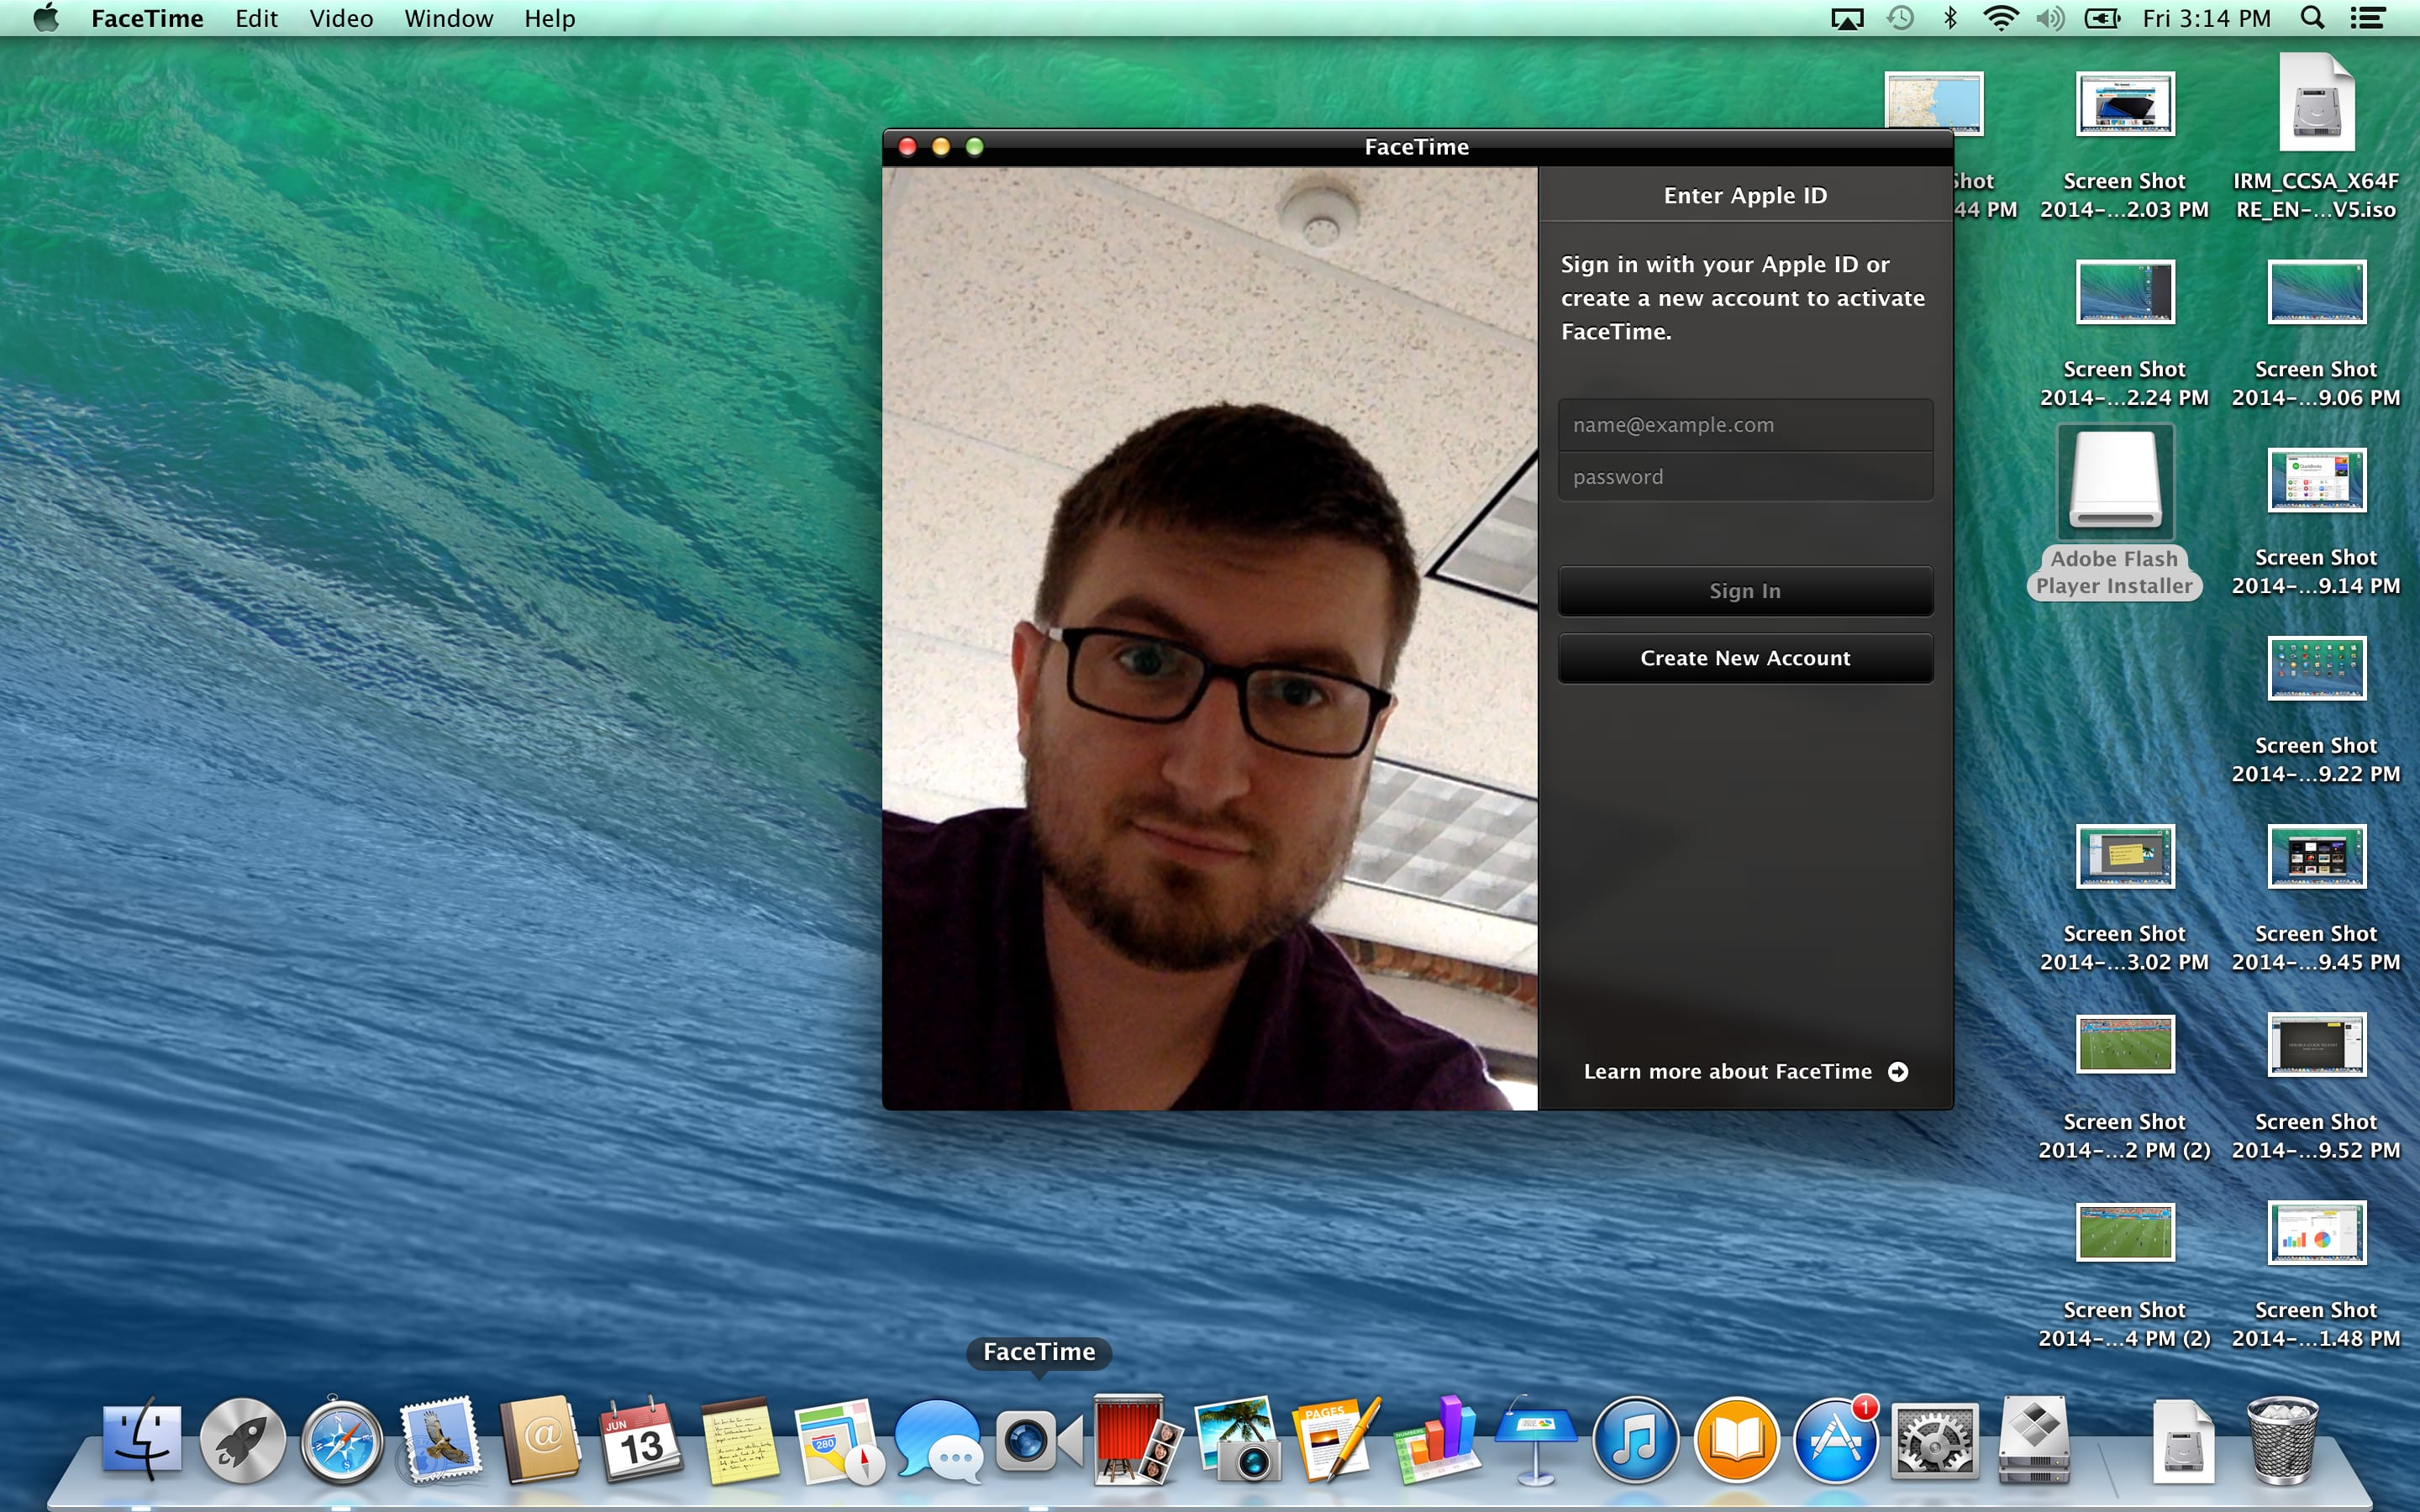 A screenshot of the Apple MacBook Pro with Retina Display's Facetime software.